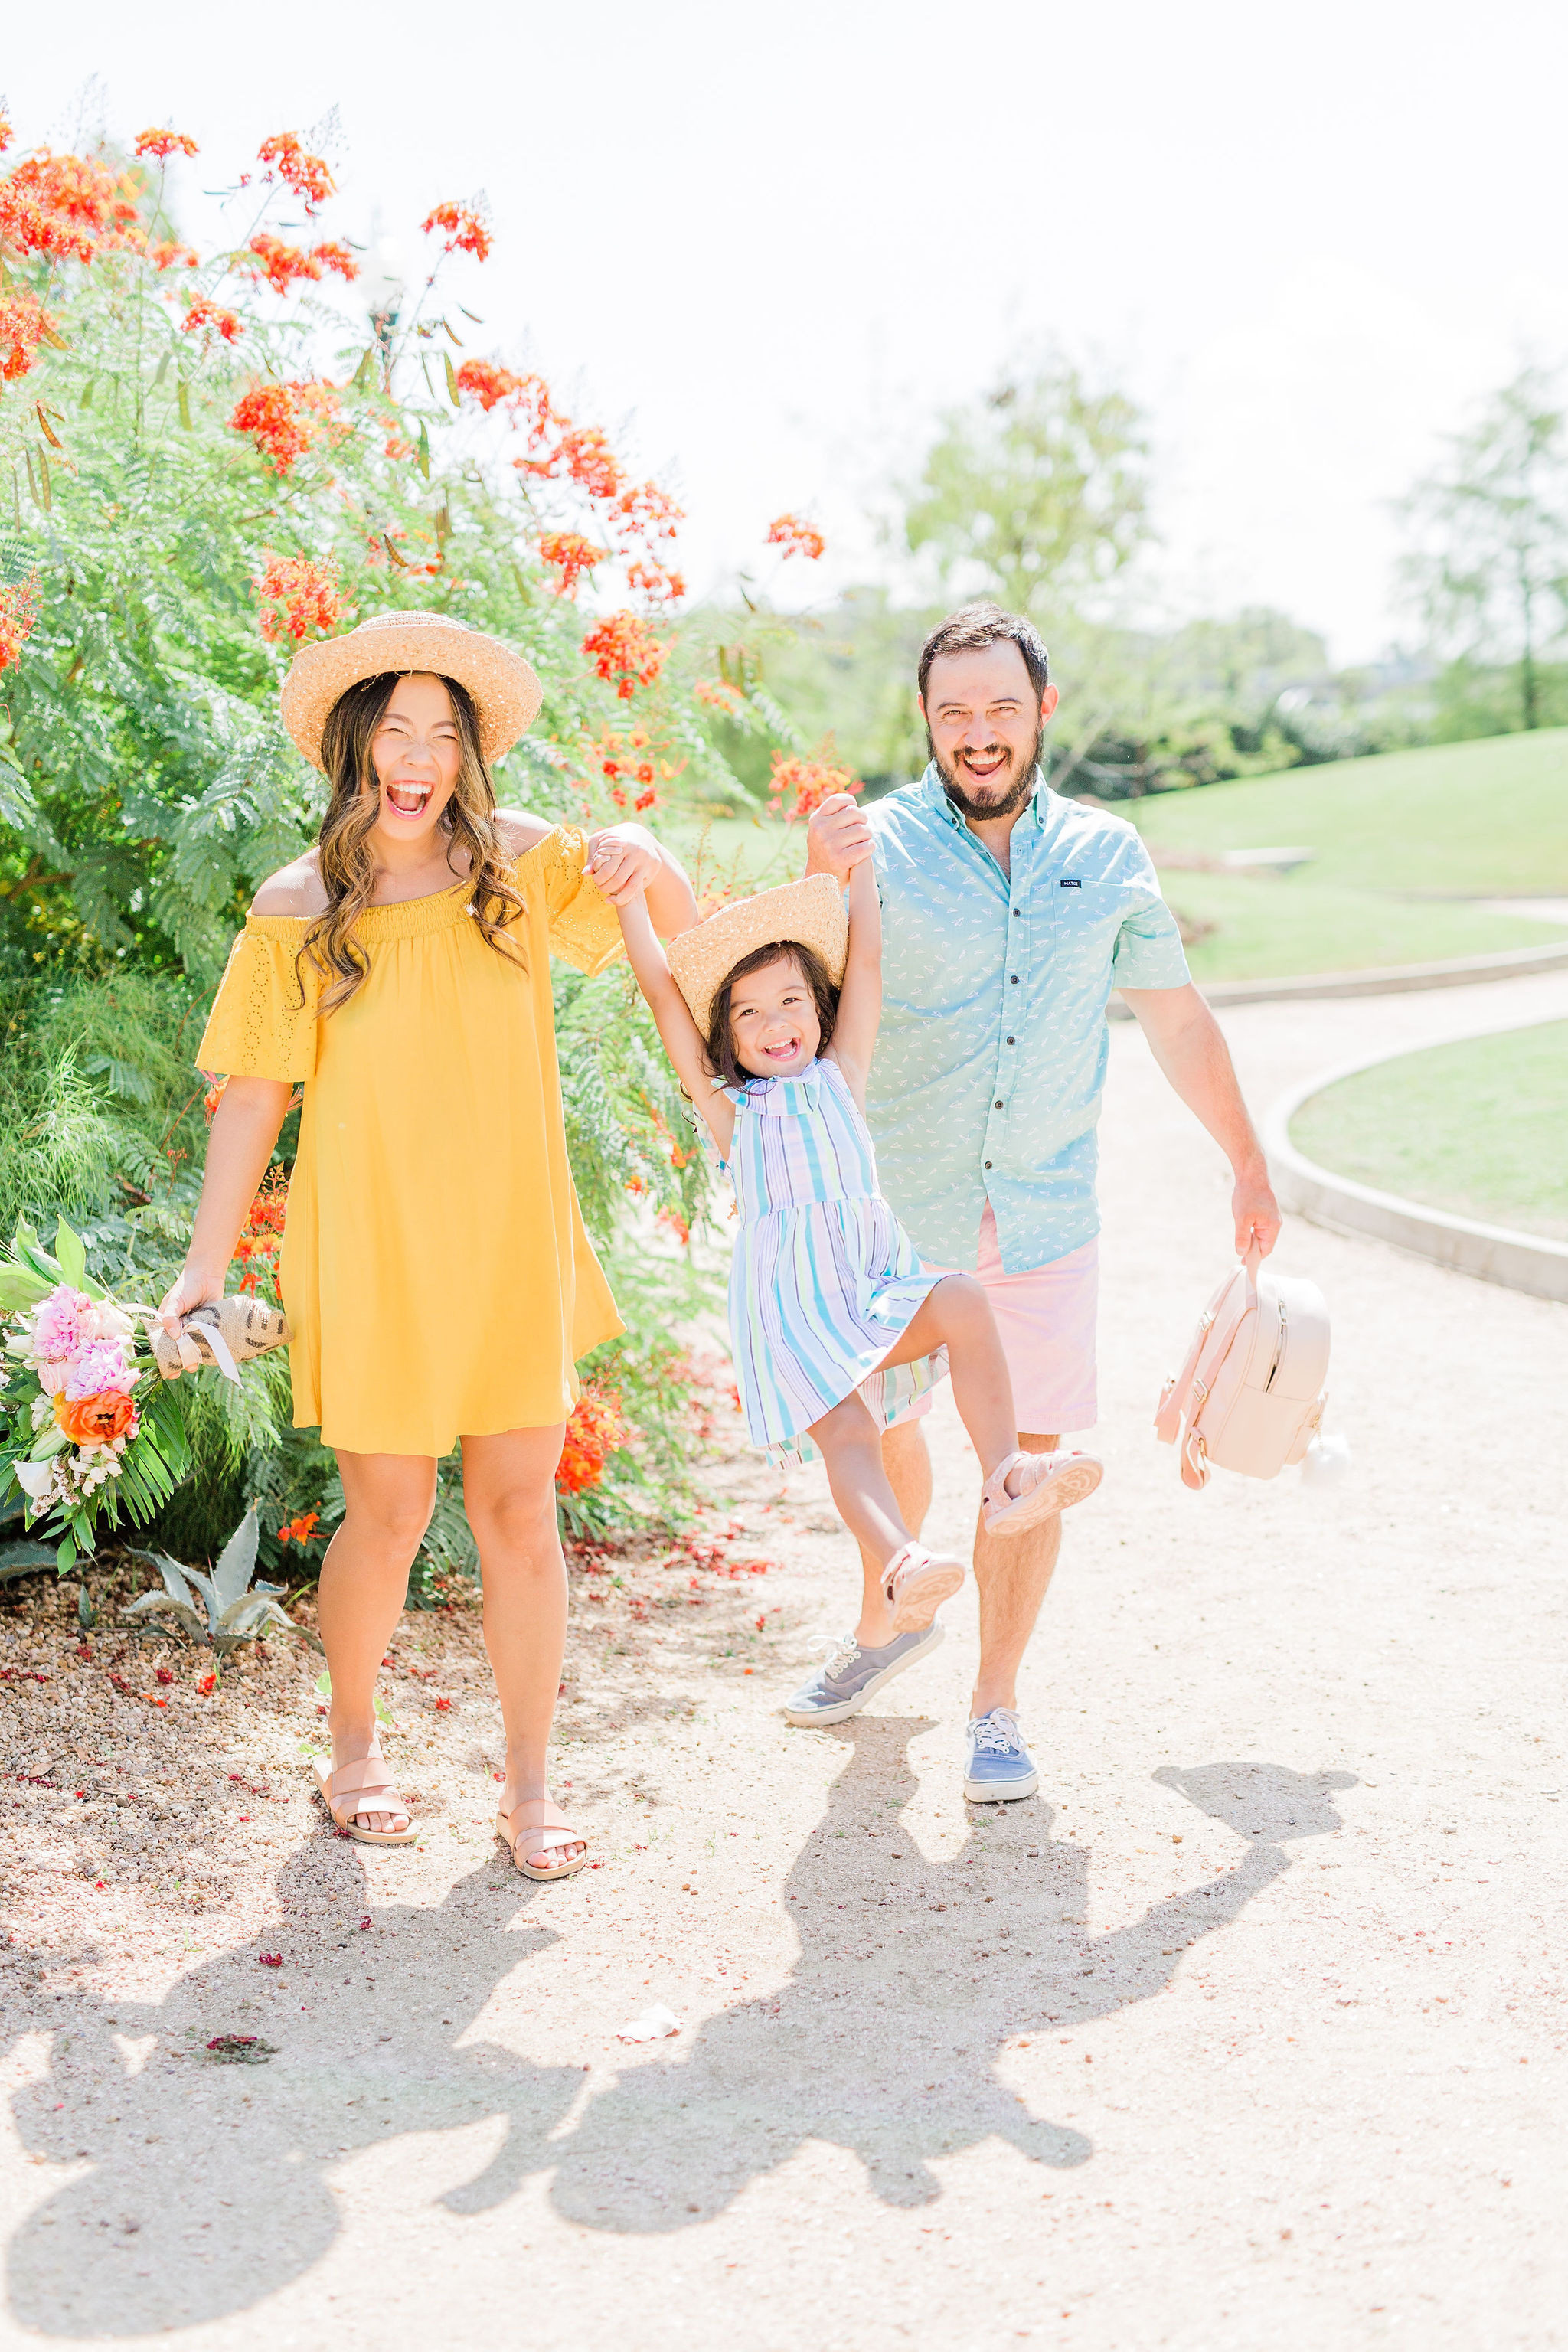 Teaching Toddlers How to Be Grateful - colorful Back to school family outfit ideas Joyfullygreen family travel blog